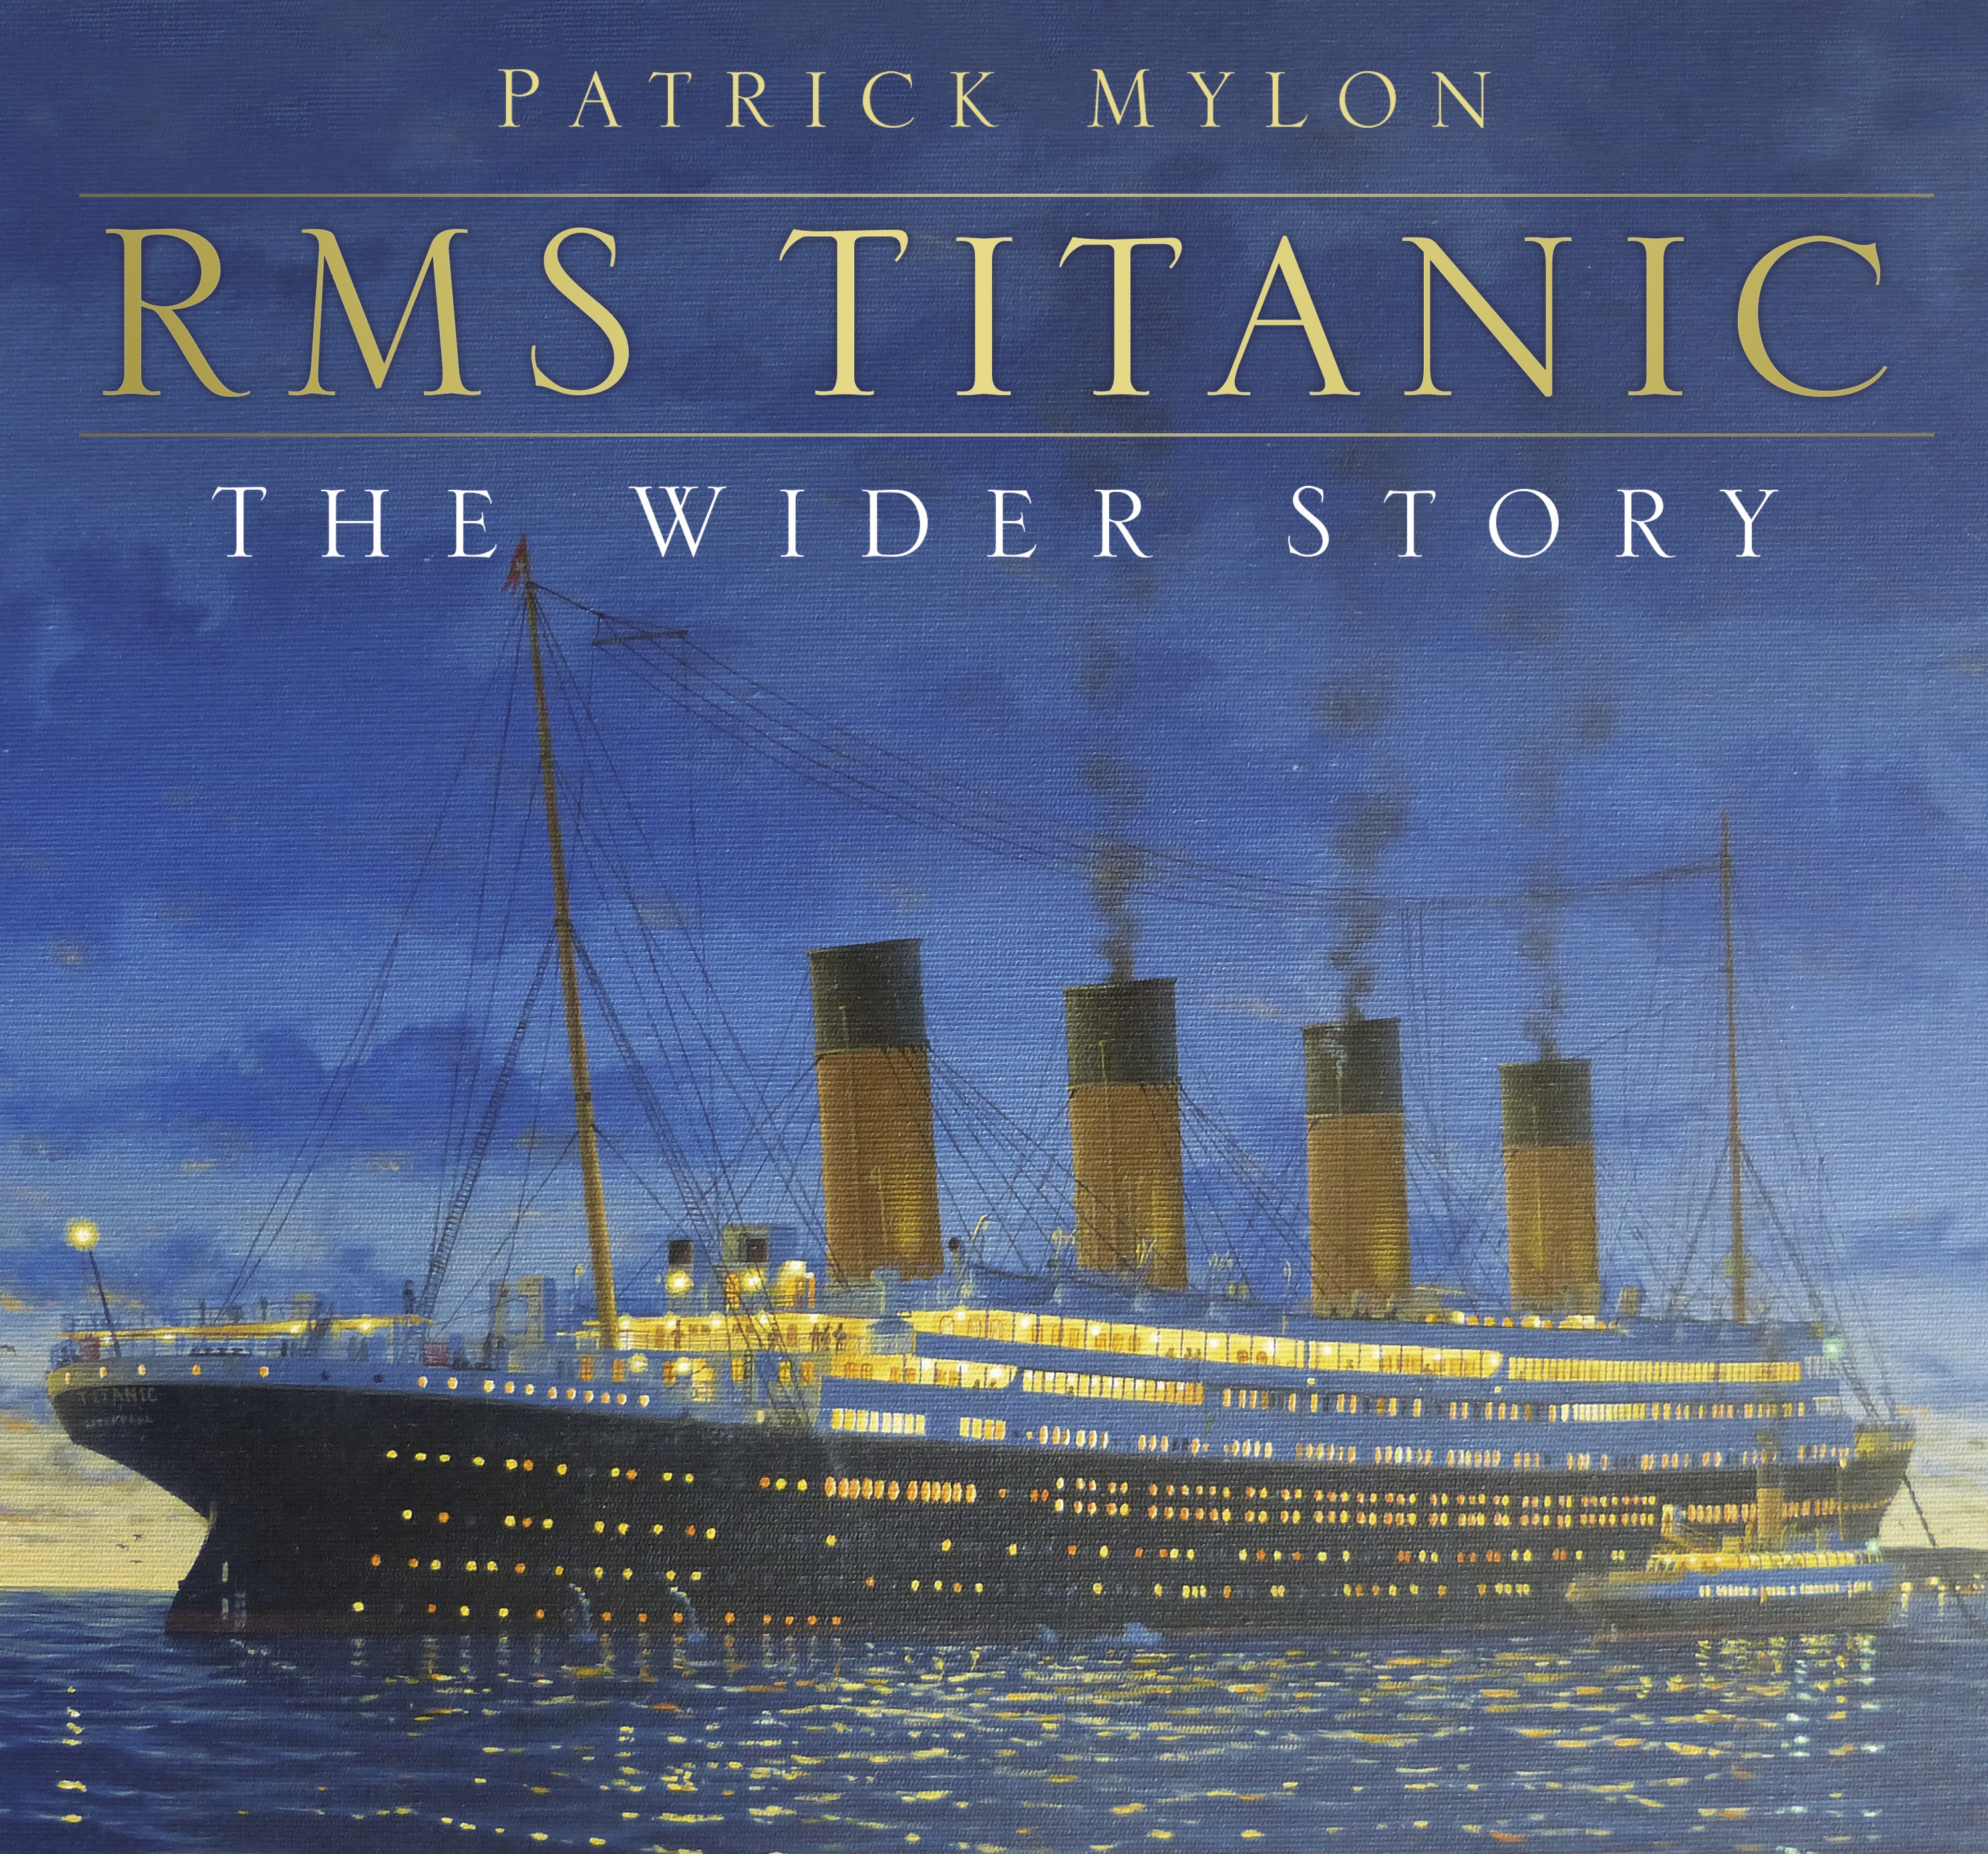 What Does Rms Mean >> The History Press | RMS Titanic - The Wider Story